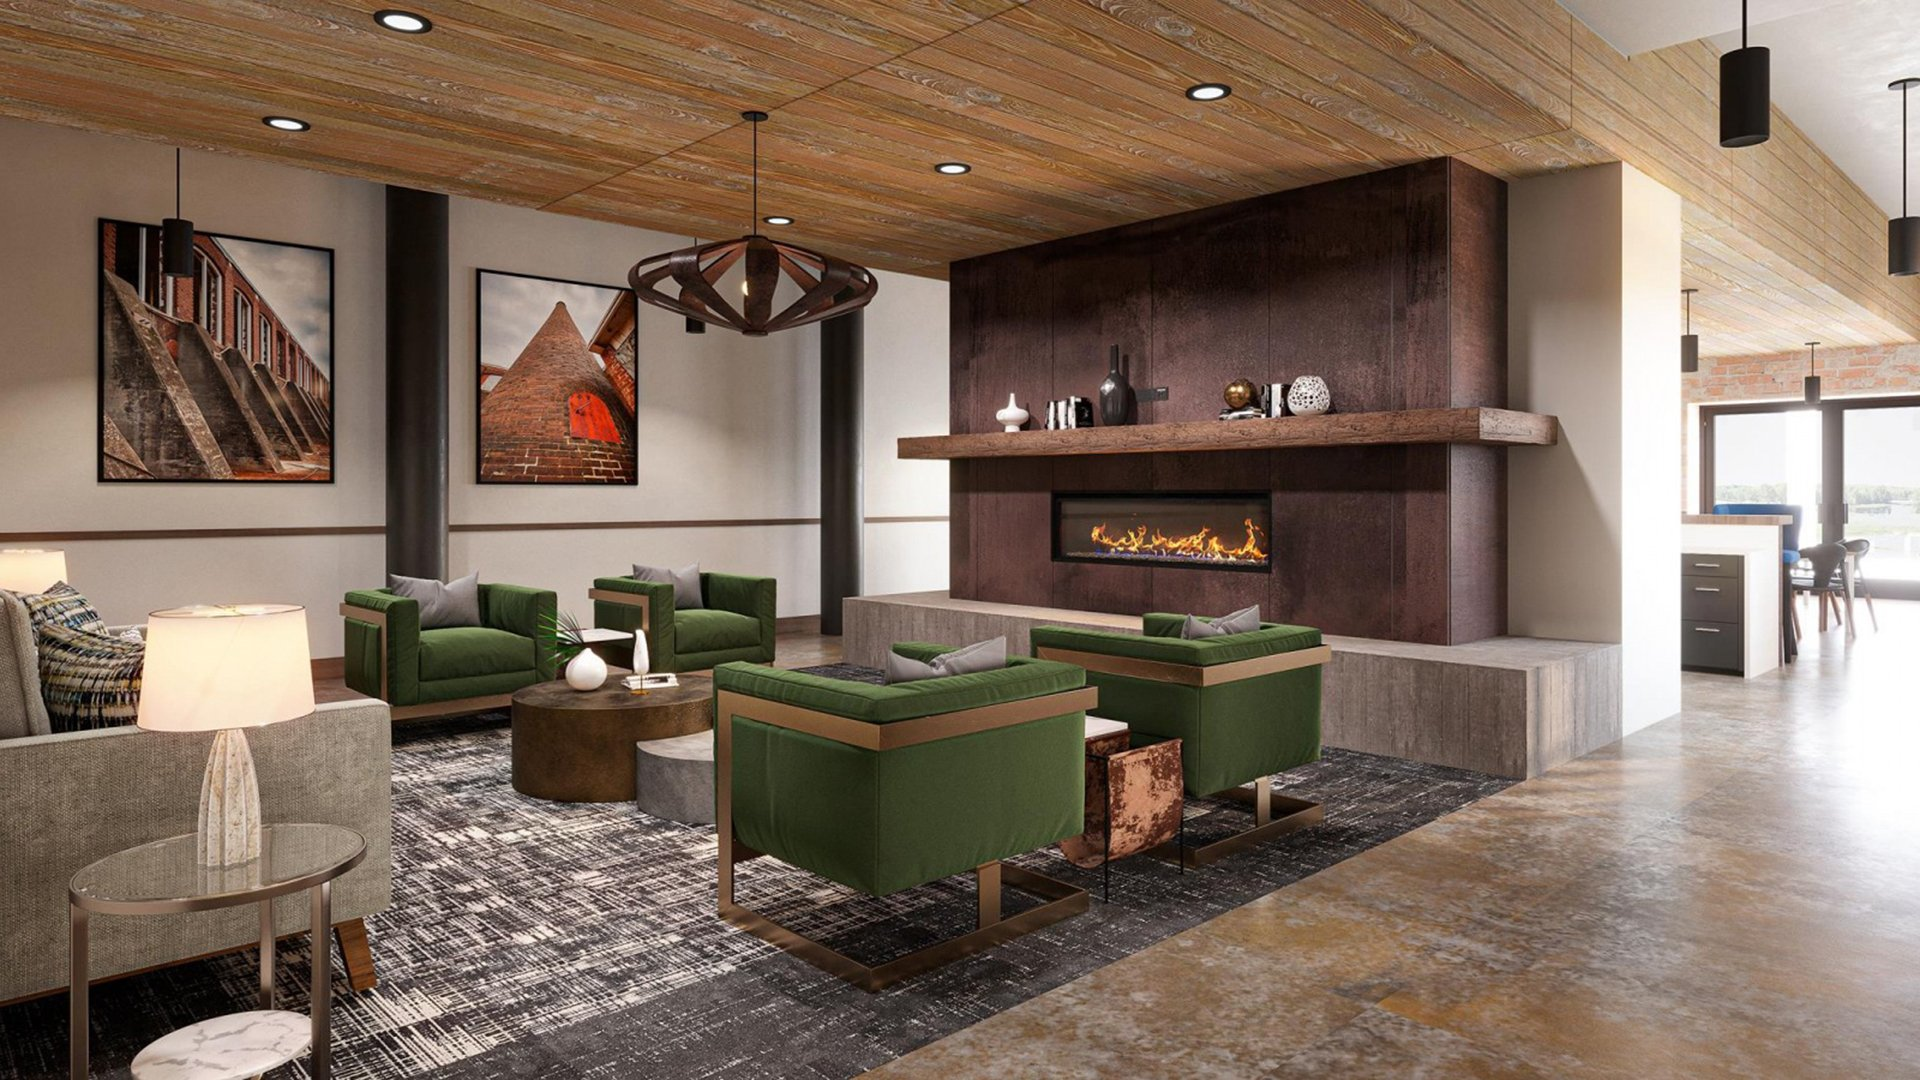 Judson Mill Lofts Now Leasing